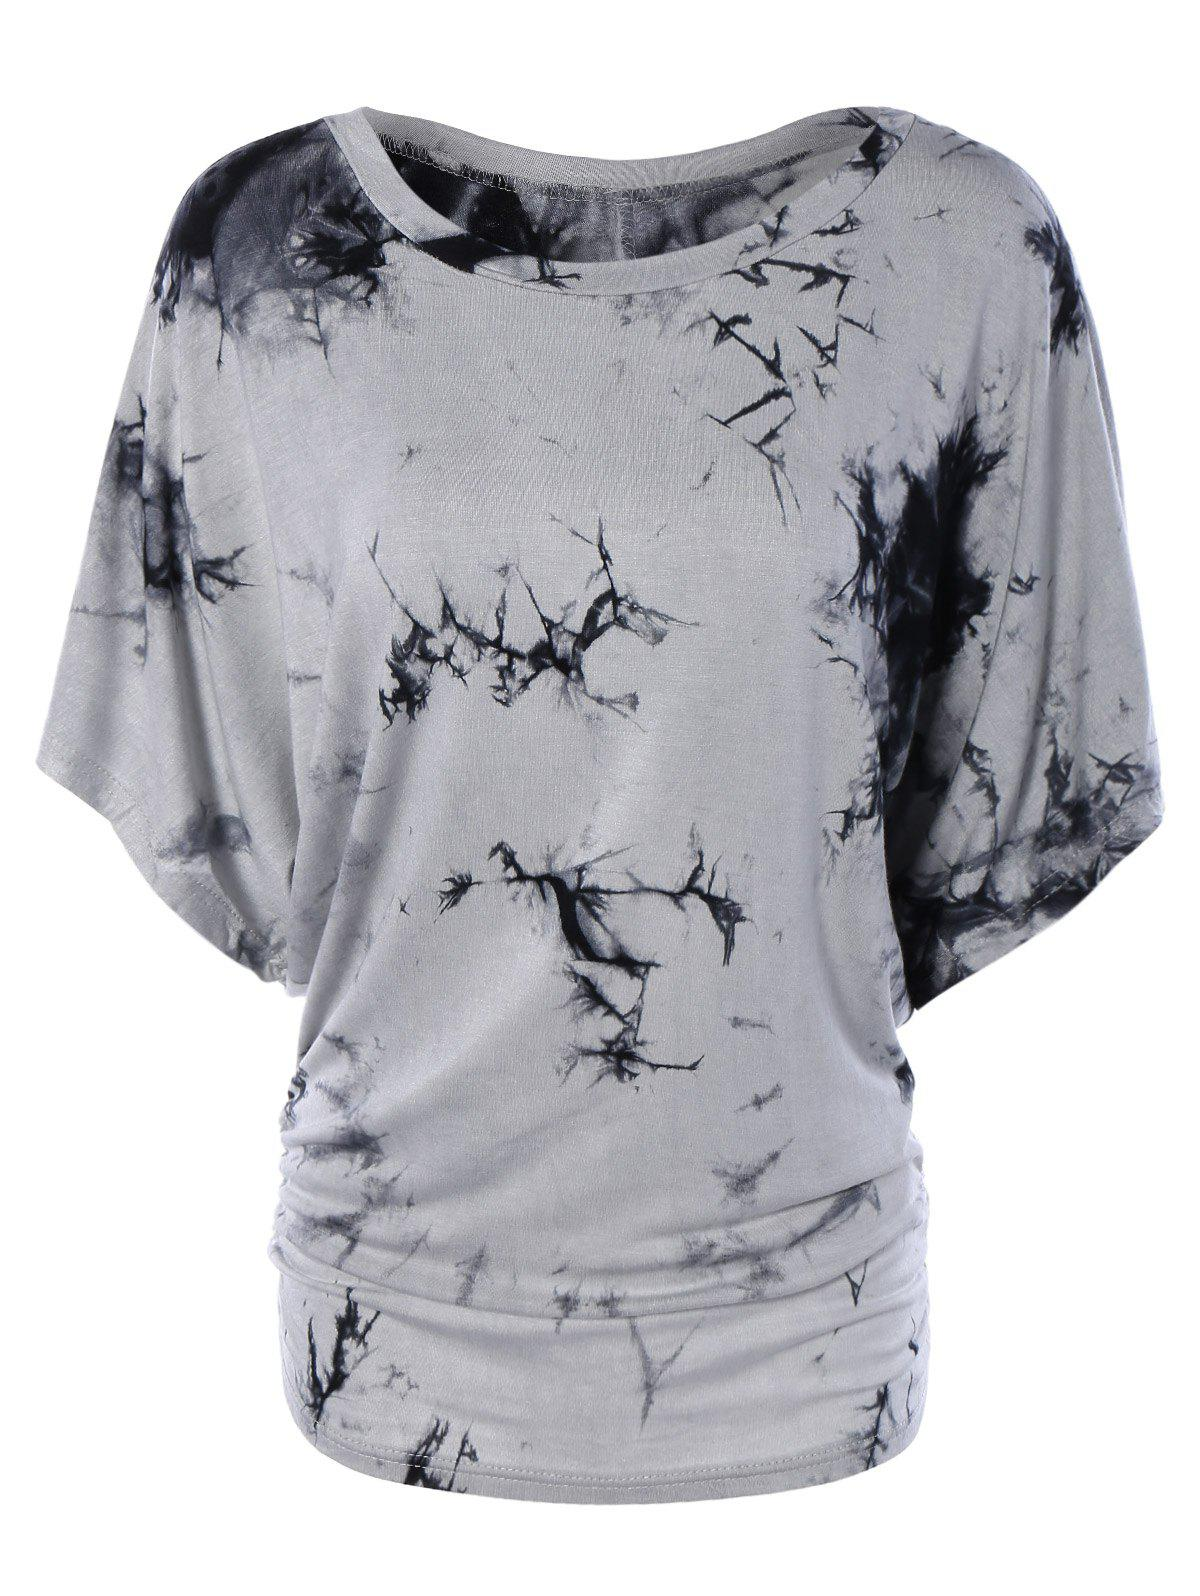 Scoop Neck Dolman Sleeve Tie-Dyed T-Shirt